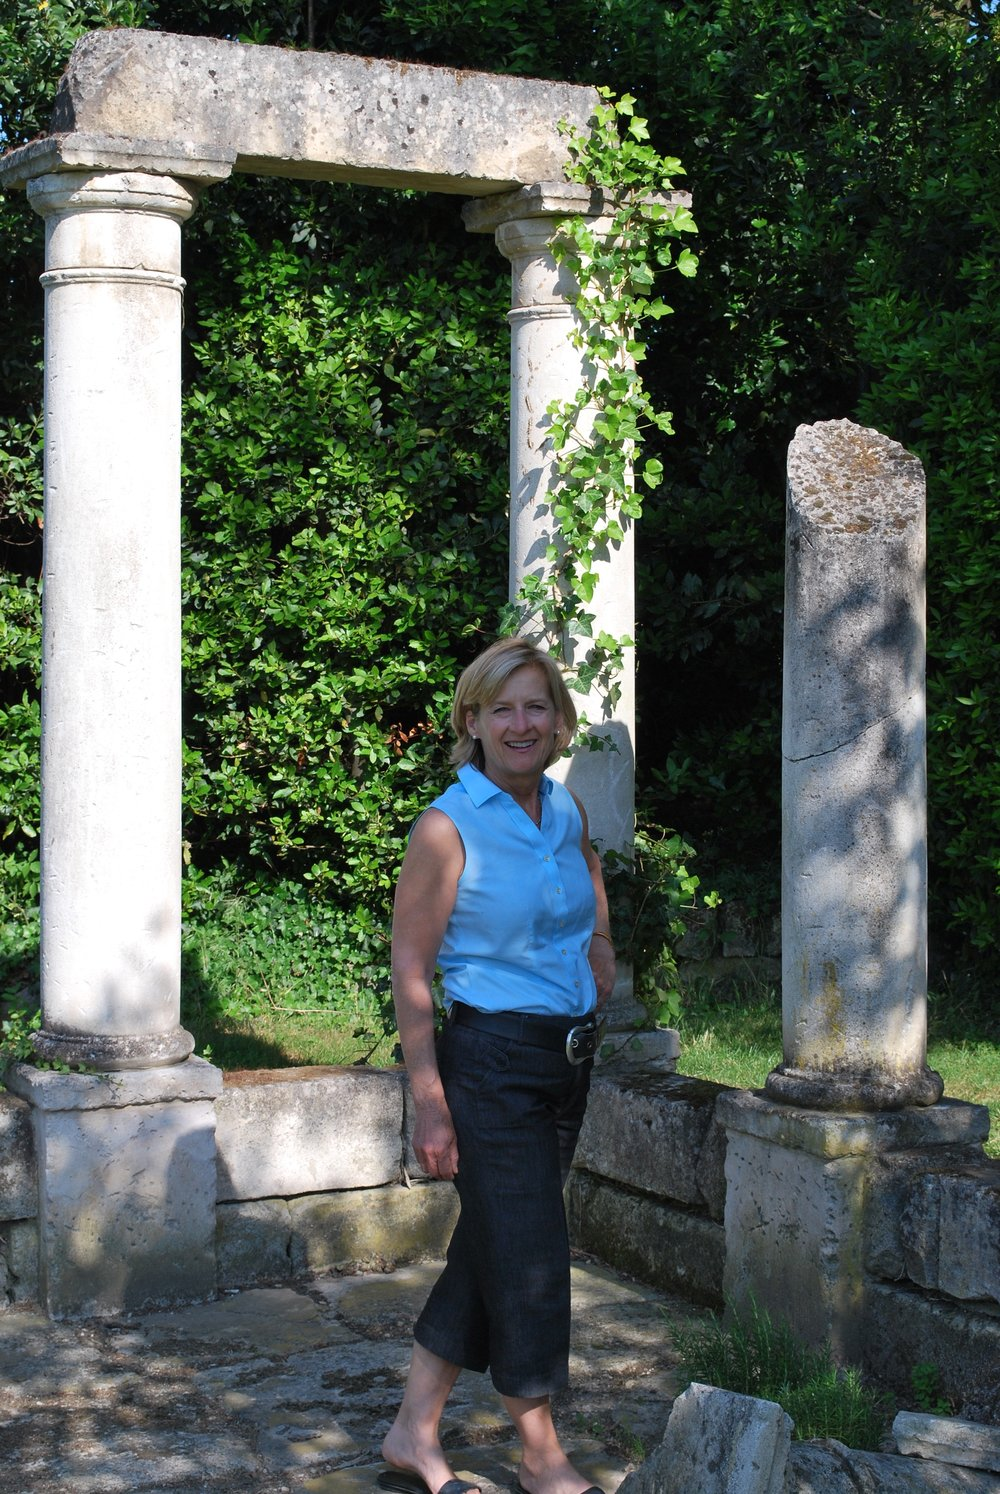 In James Clay's Garden, St. Remy Provence